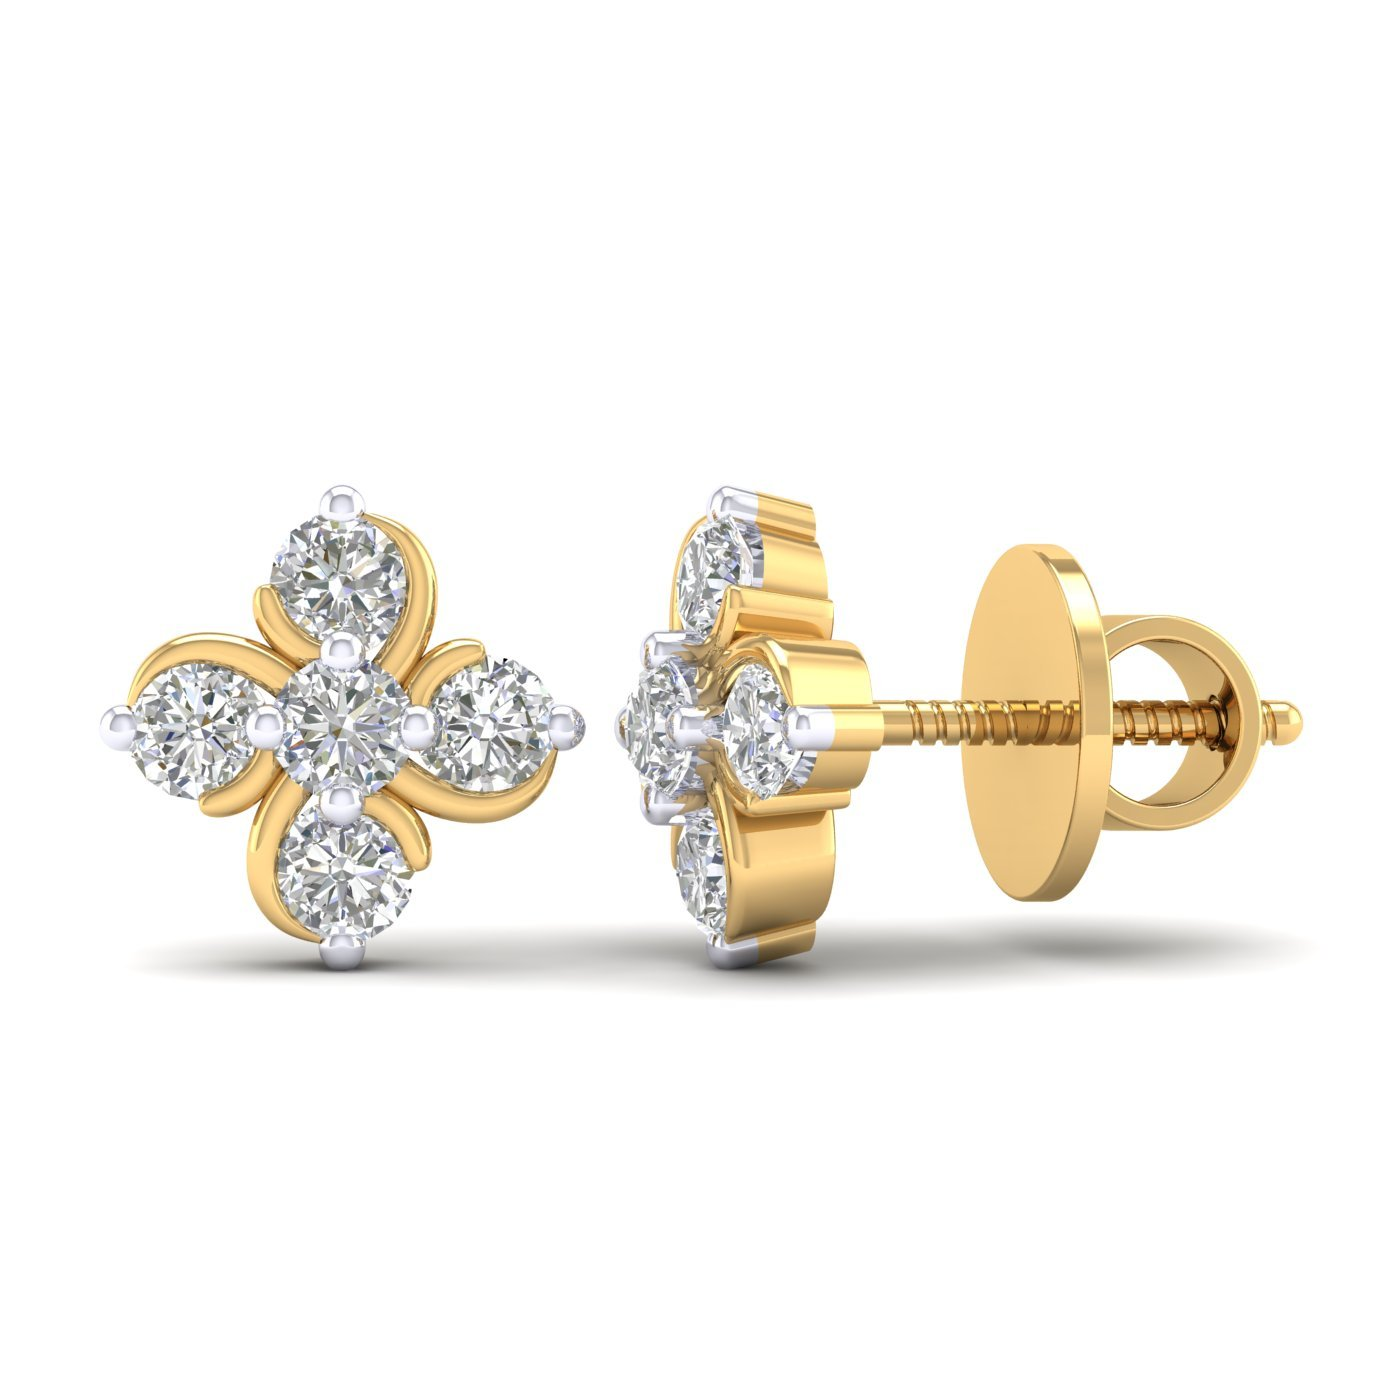 14K Yellow Gold Plated Round AAA Cubic Zirconia Flower Cluster Mini Stud Earrings Summer Sale